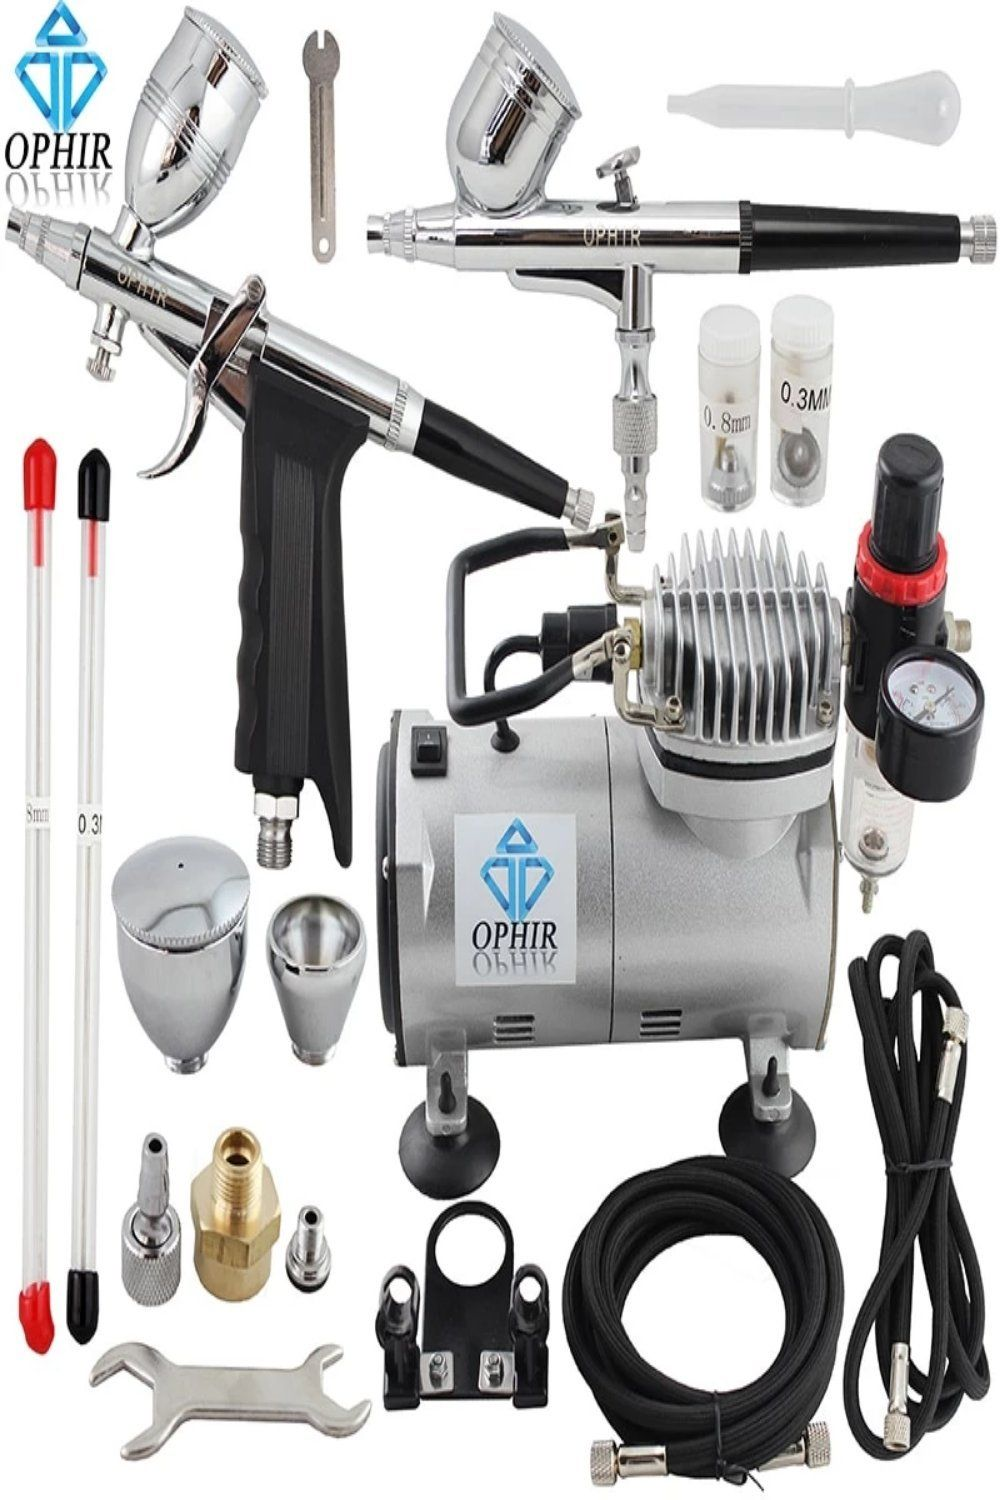 OPHIR 2 DualAction Airbrush Kit with PRO Air Compressor